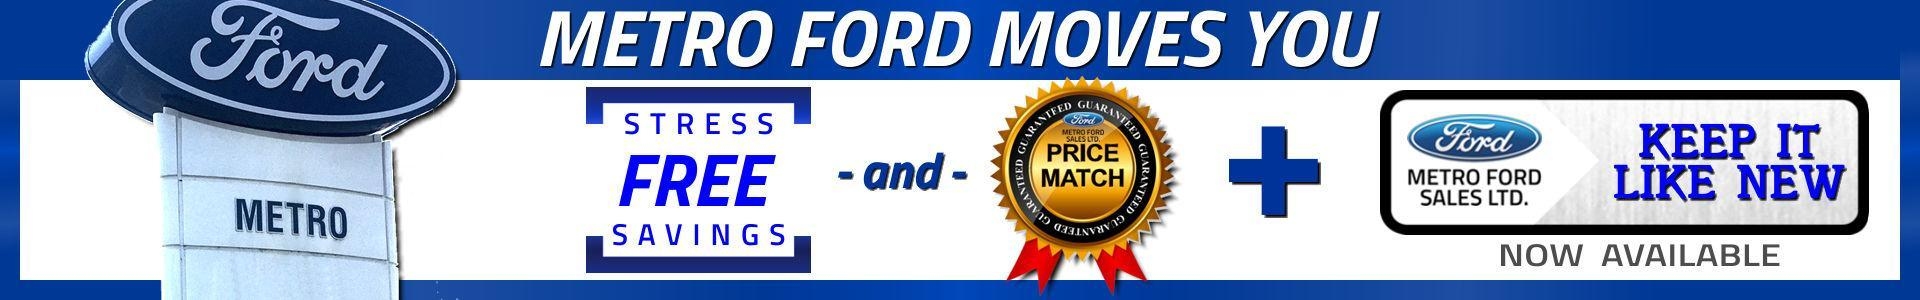 Stress-free Savings, your shopping difference at Metro Ford, Calgary, Alberta